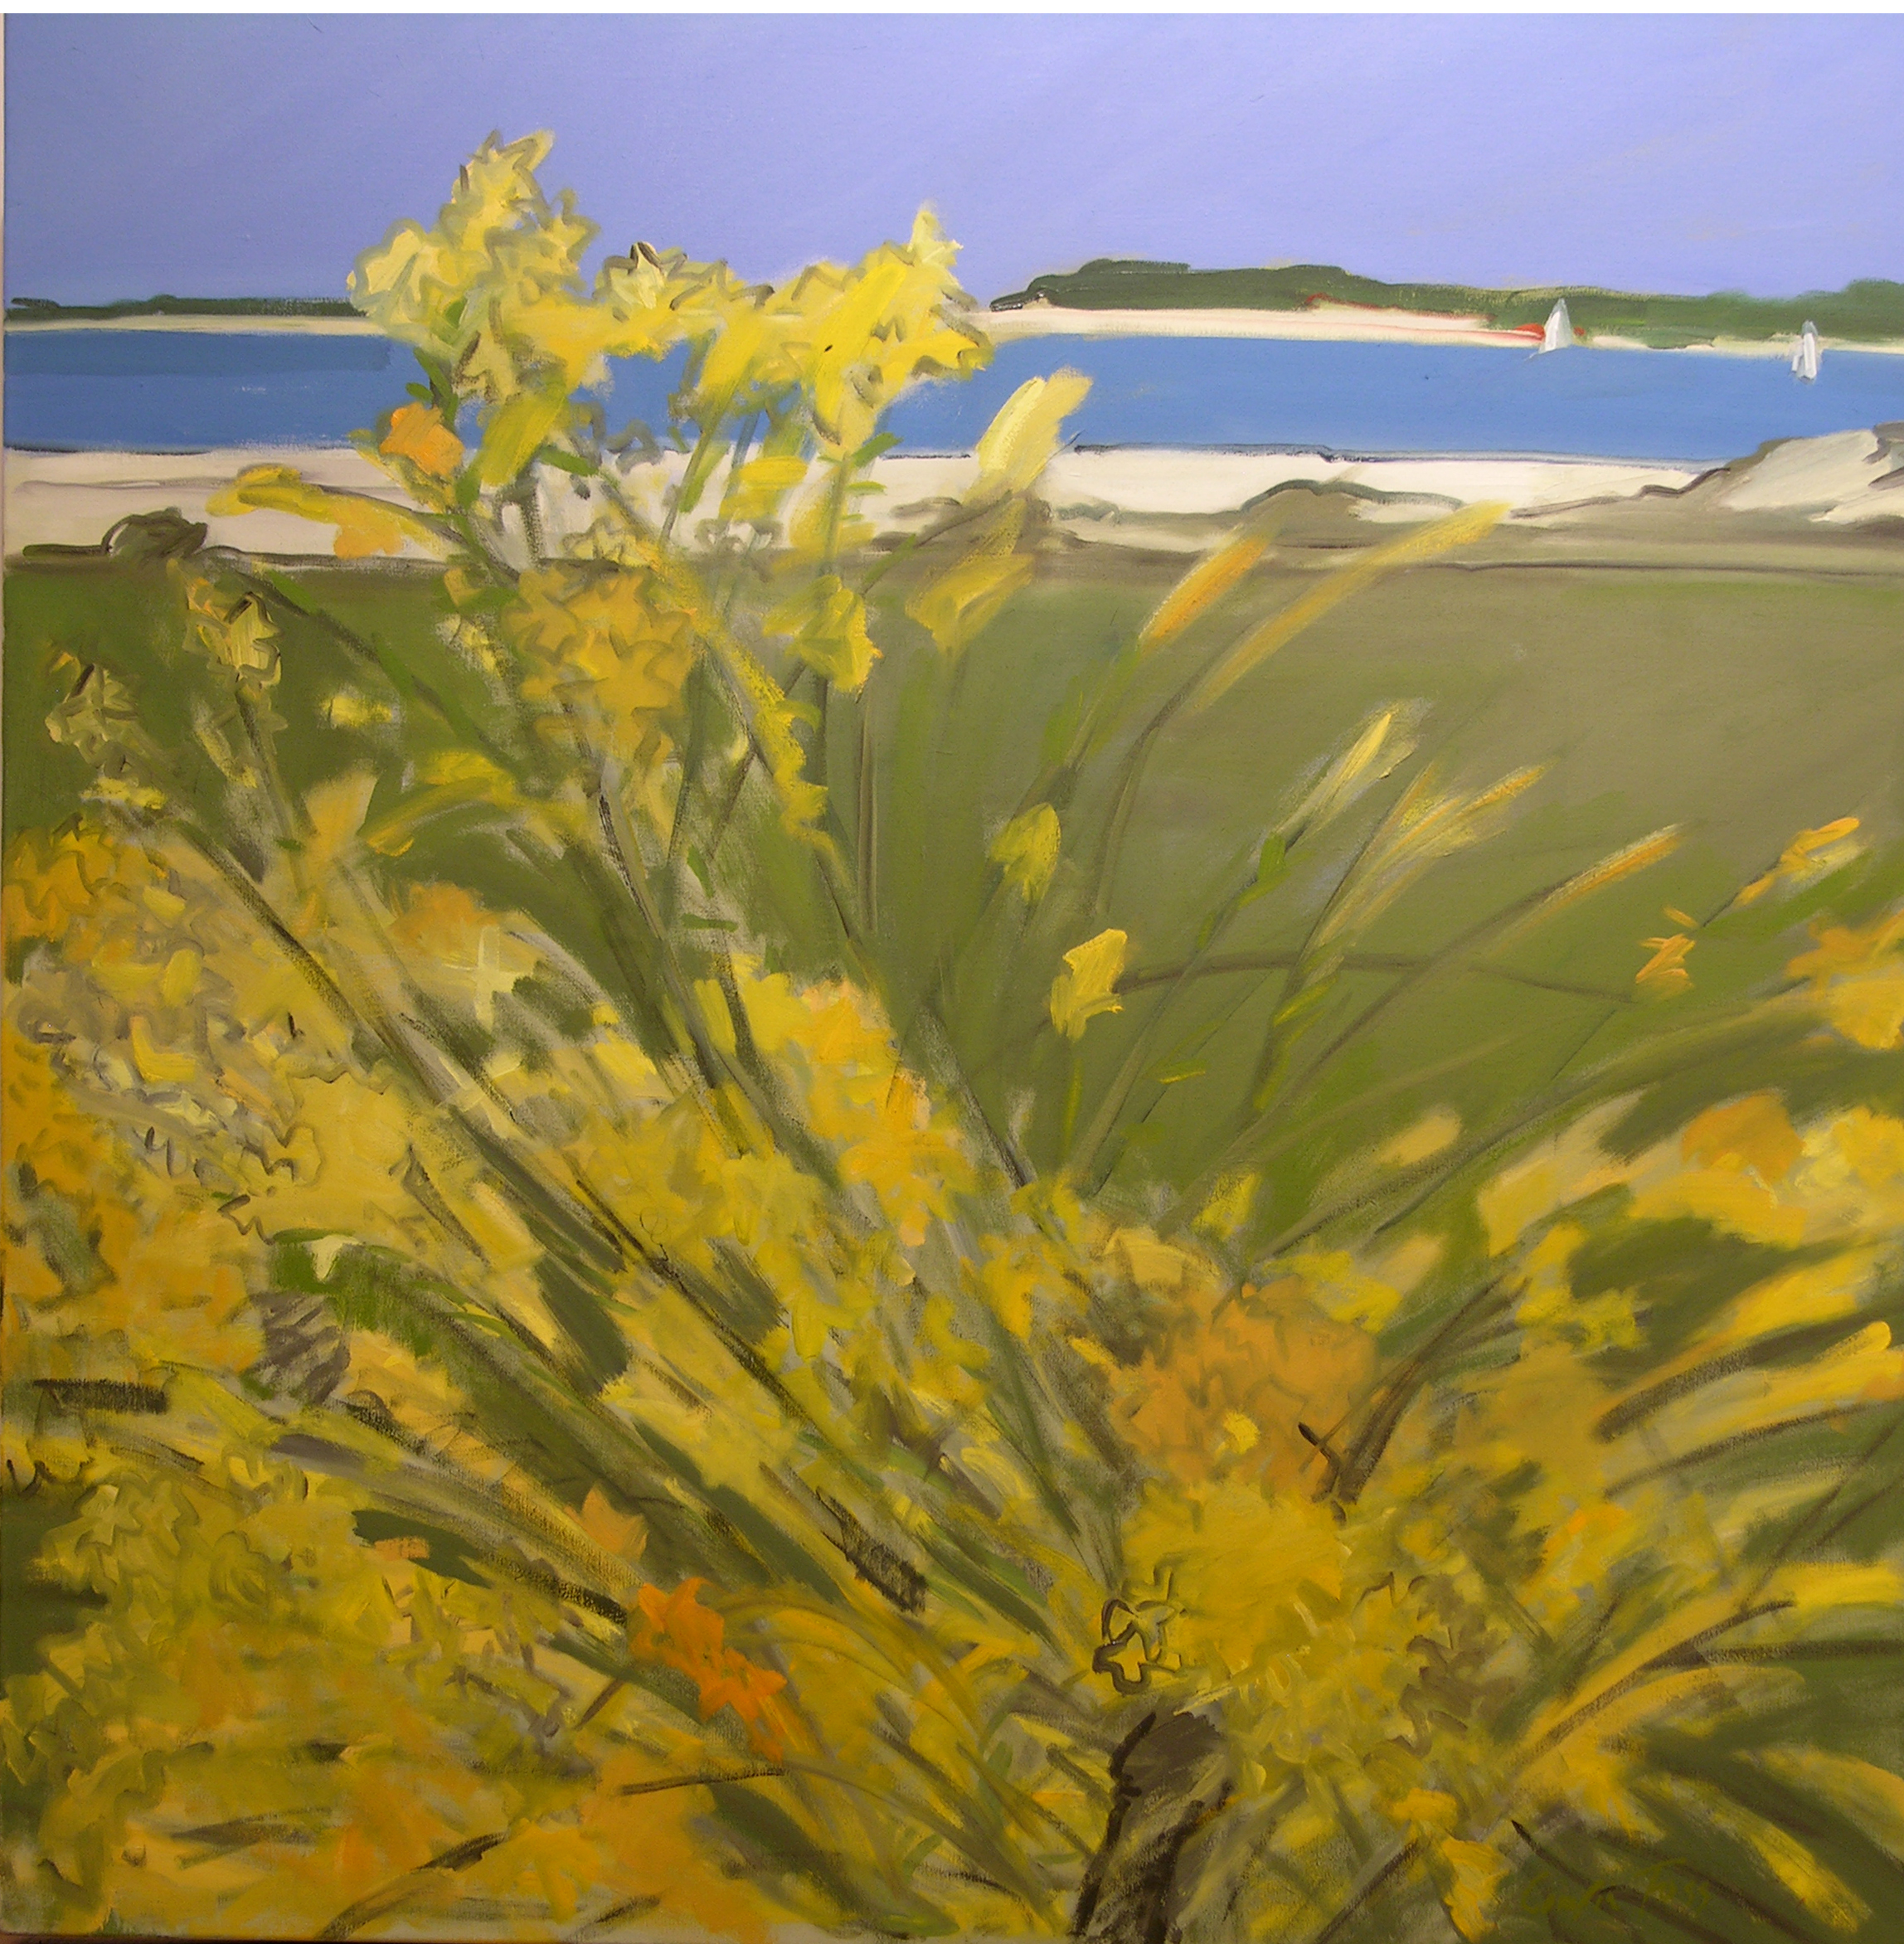 Foss_Yellow Flowers at the Beach_2005_36x34 in